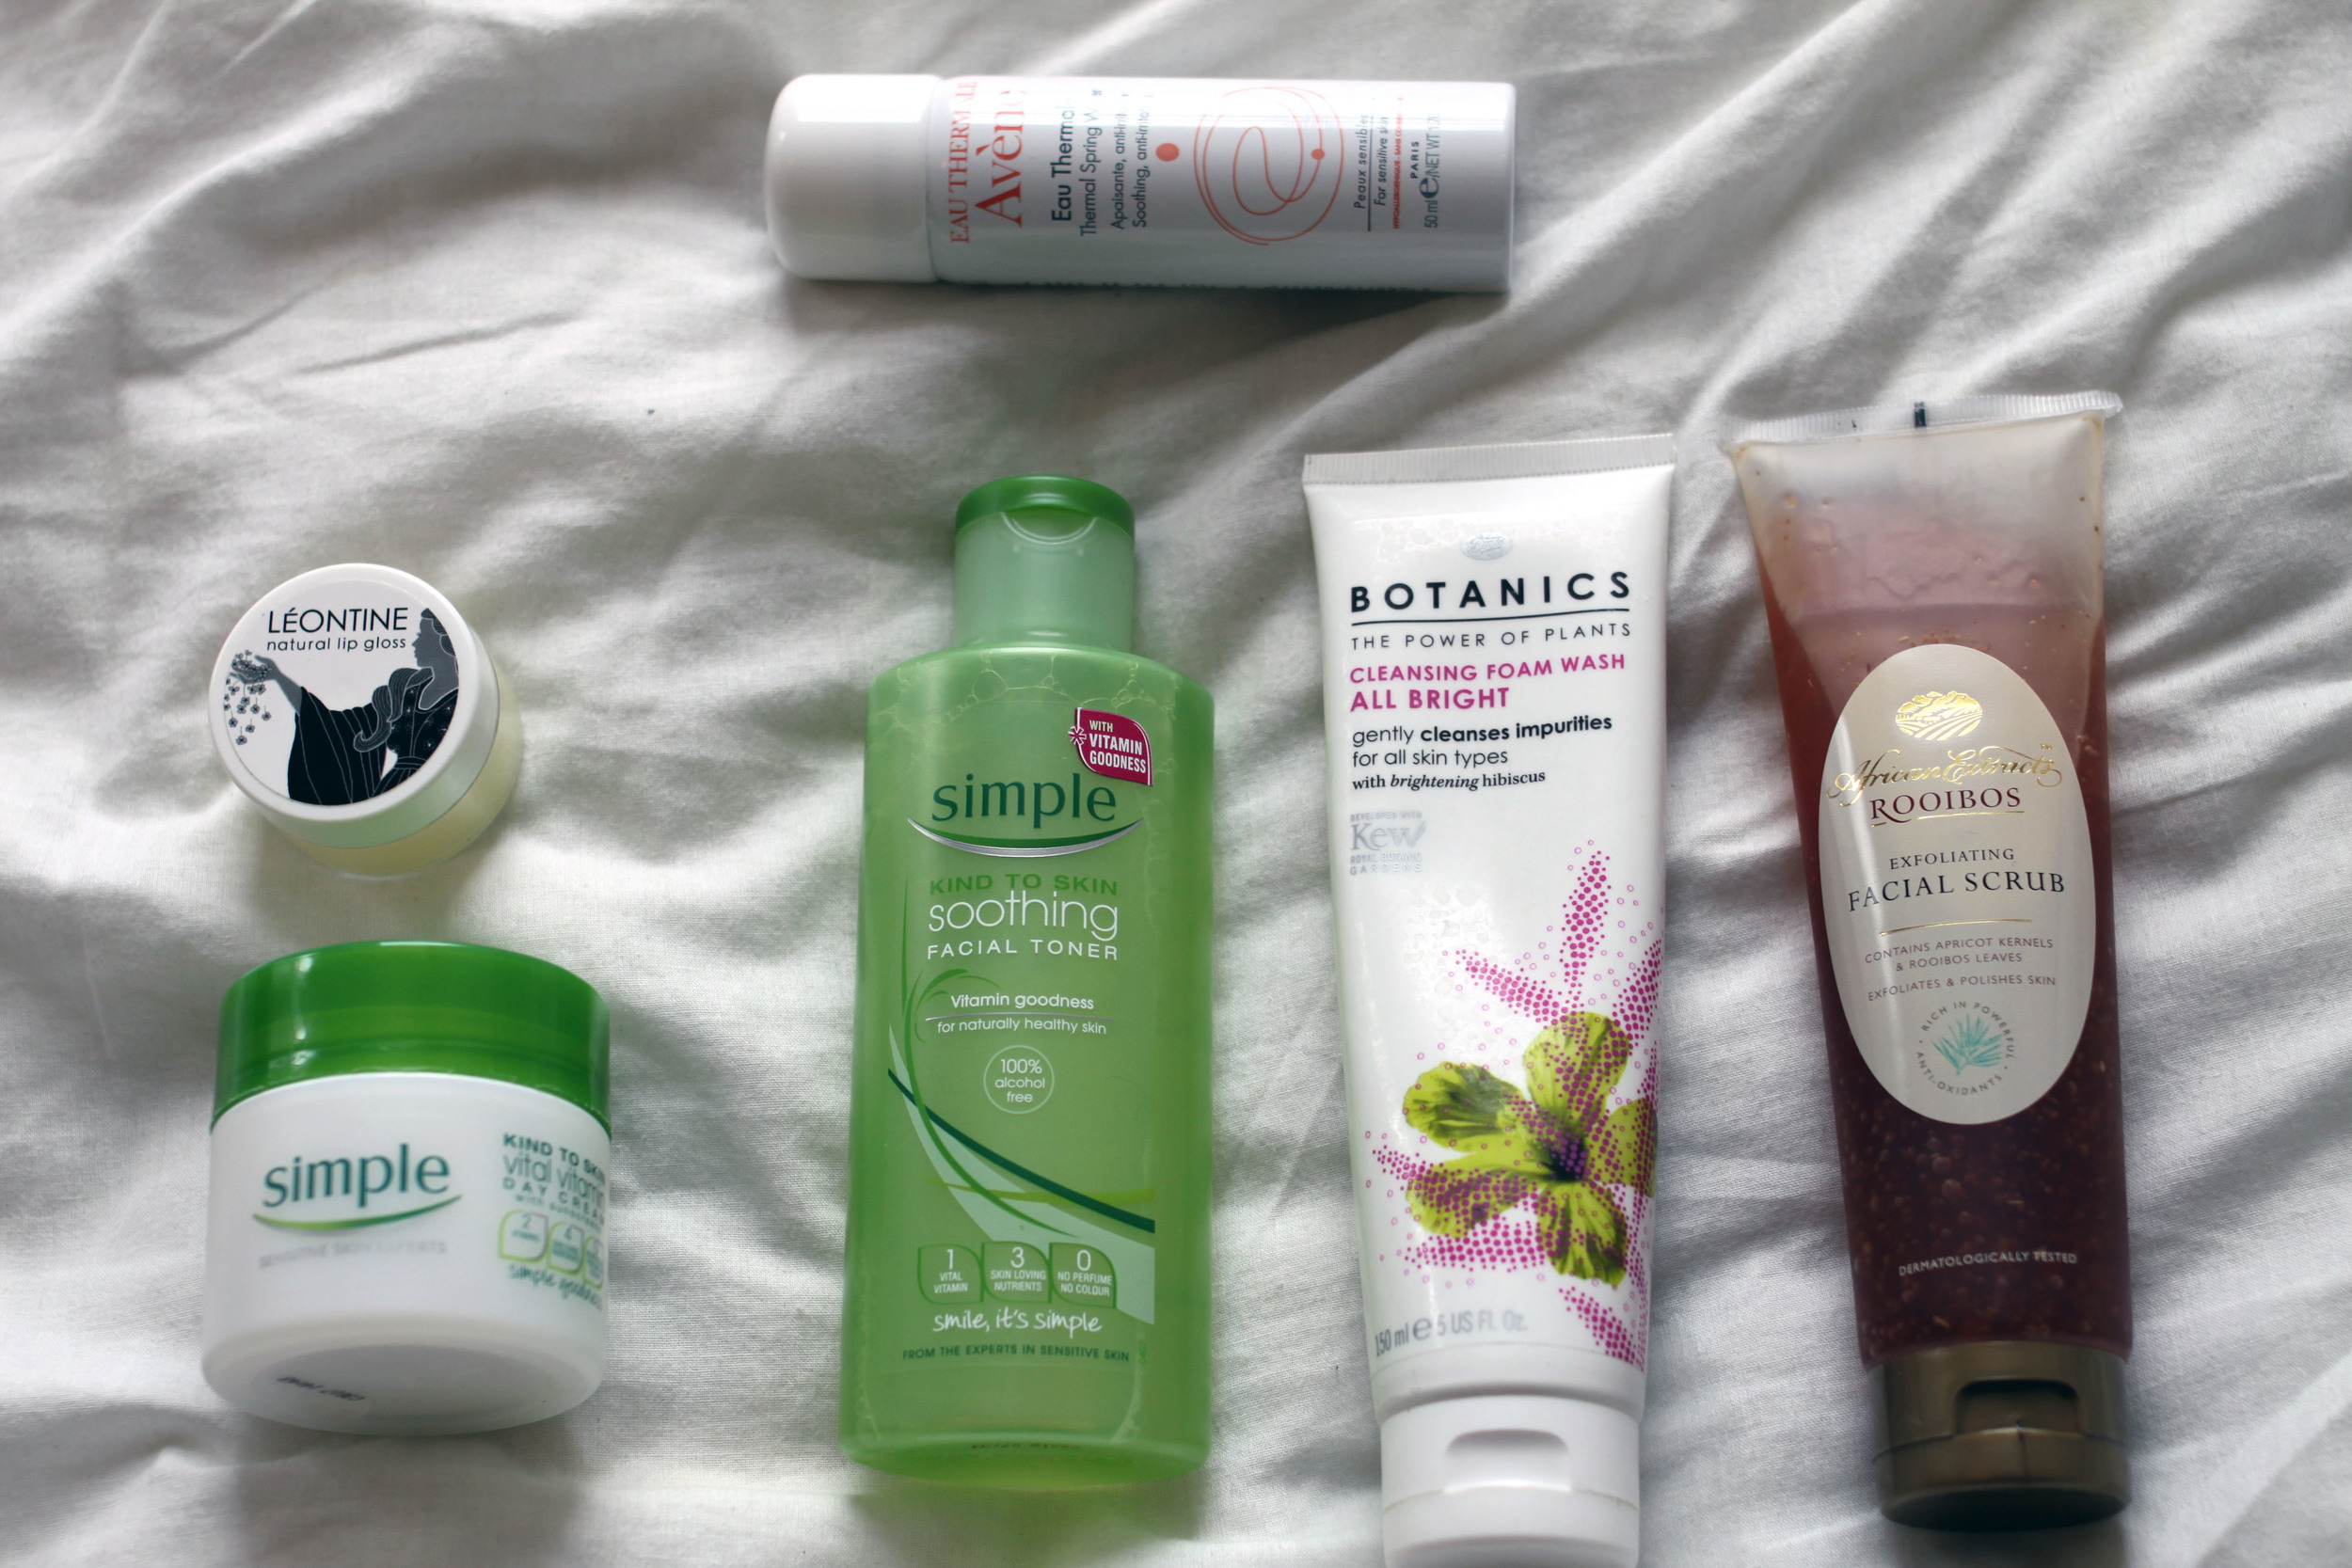 Skincare / Second Floor Flat